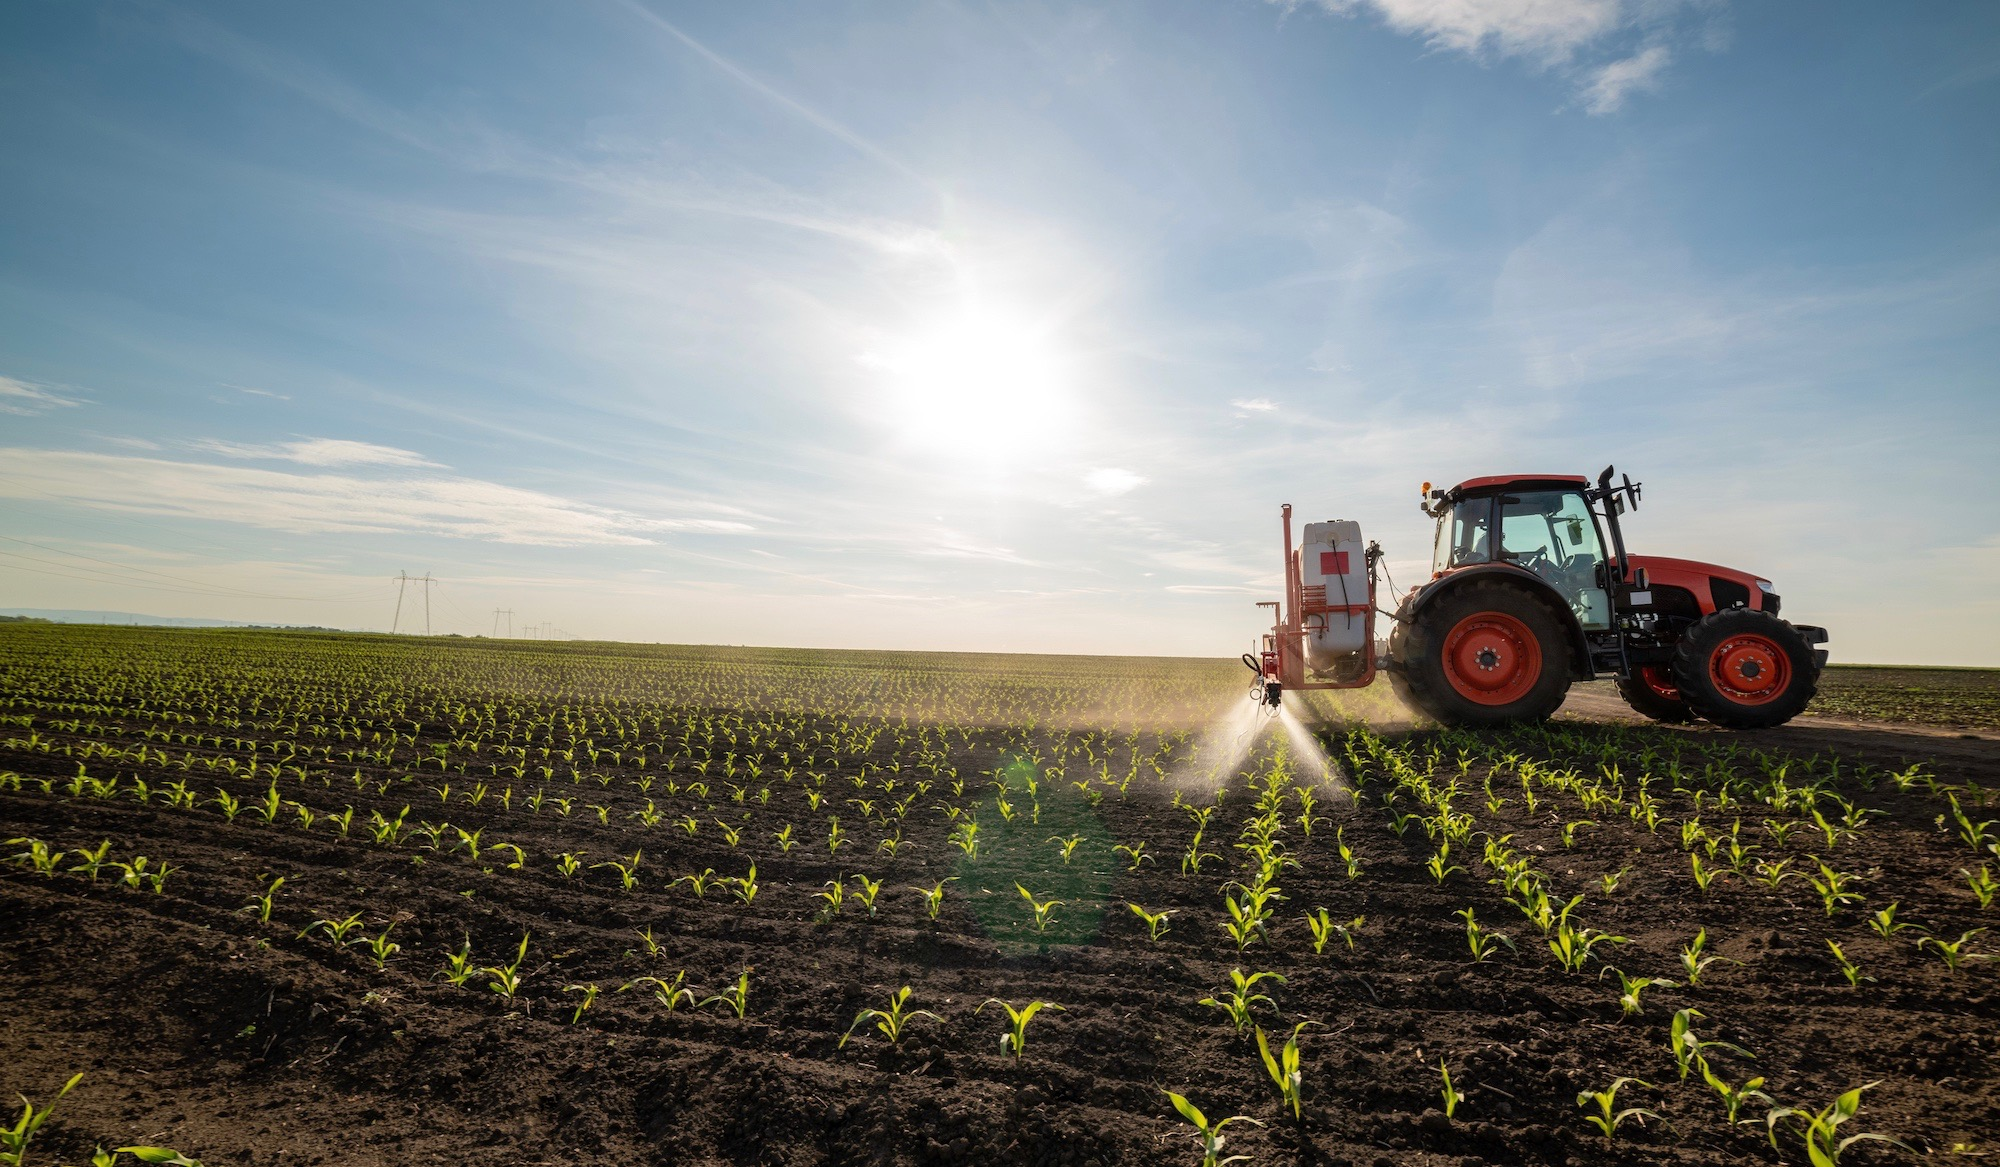 Tractor spraying young corn